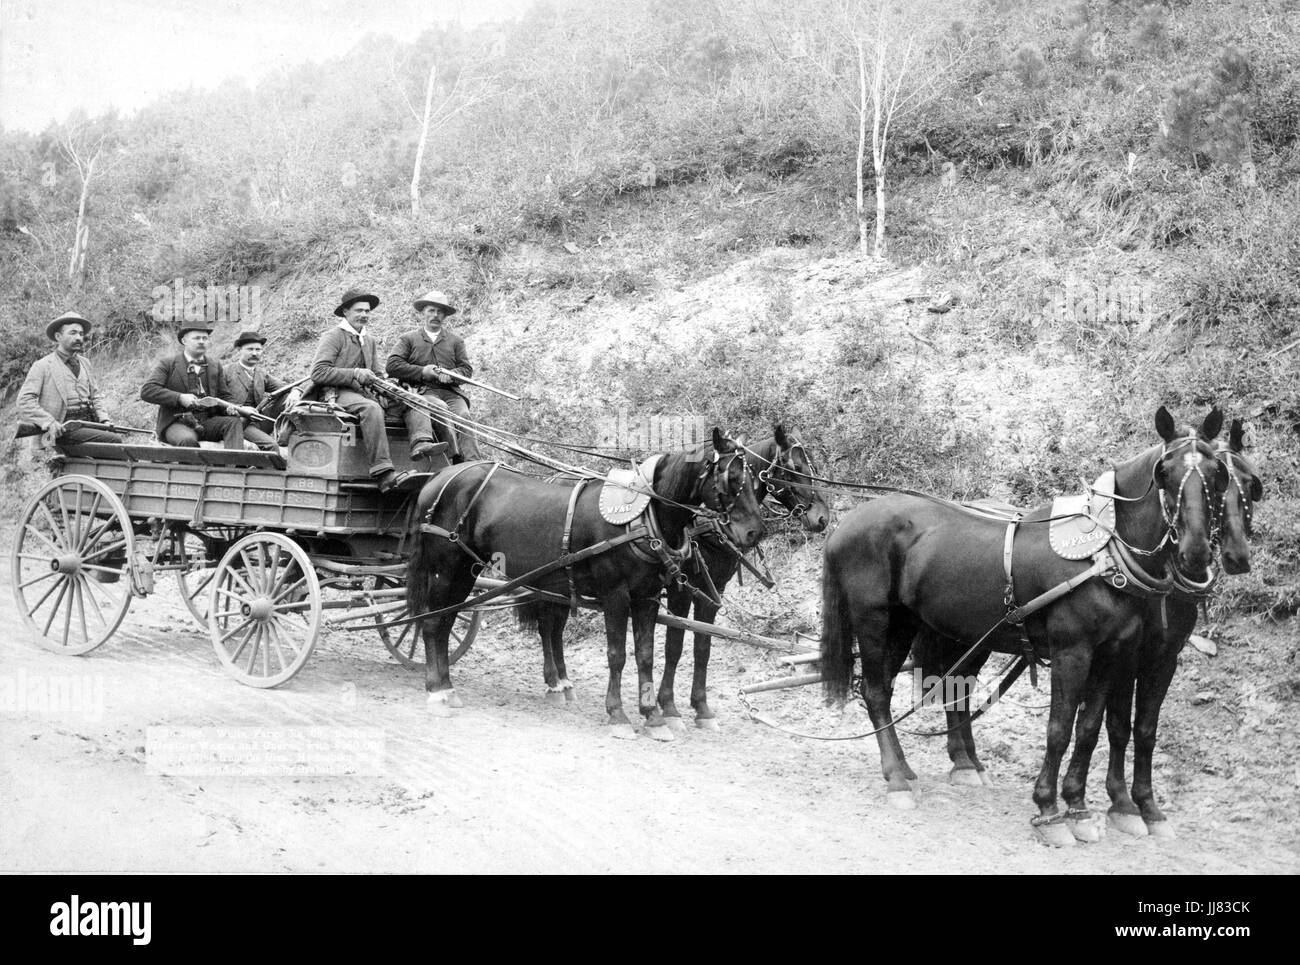 WELLS FARGO EXPRESS COMPANY The Deadwood Treasure Wagon with four armed guards carrying $250,000 in gold bullion - Stock Image